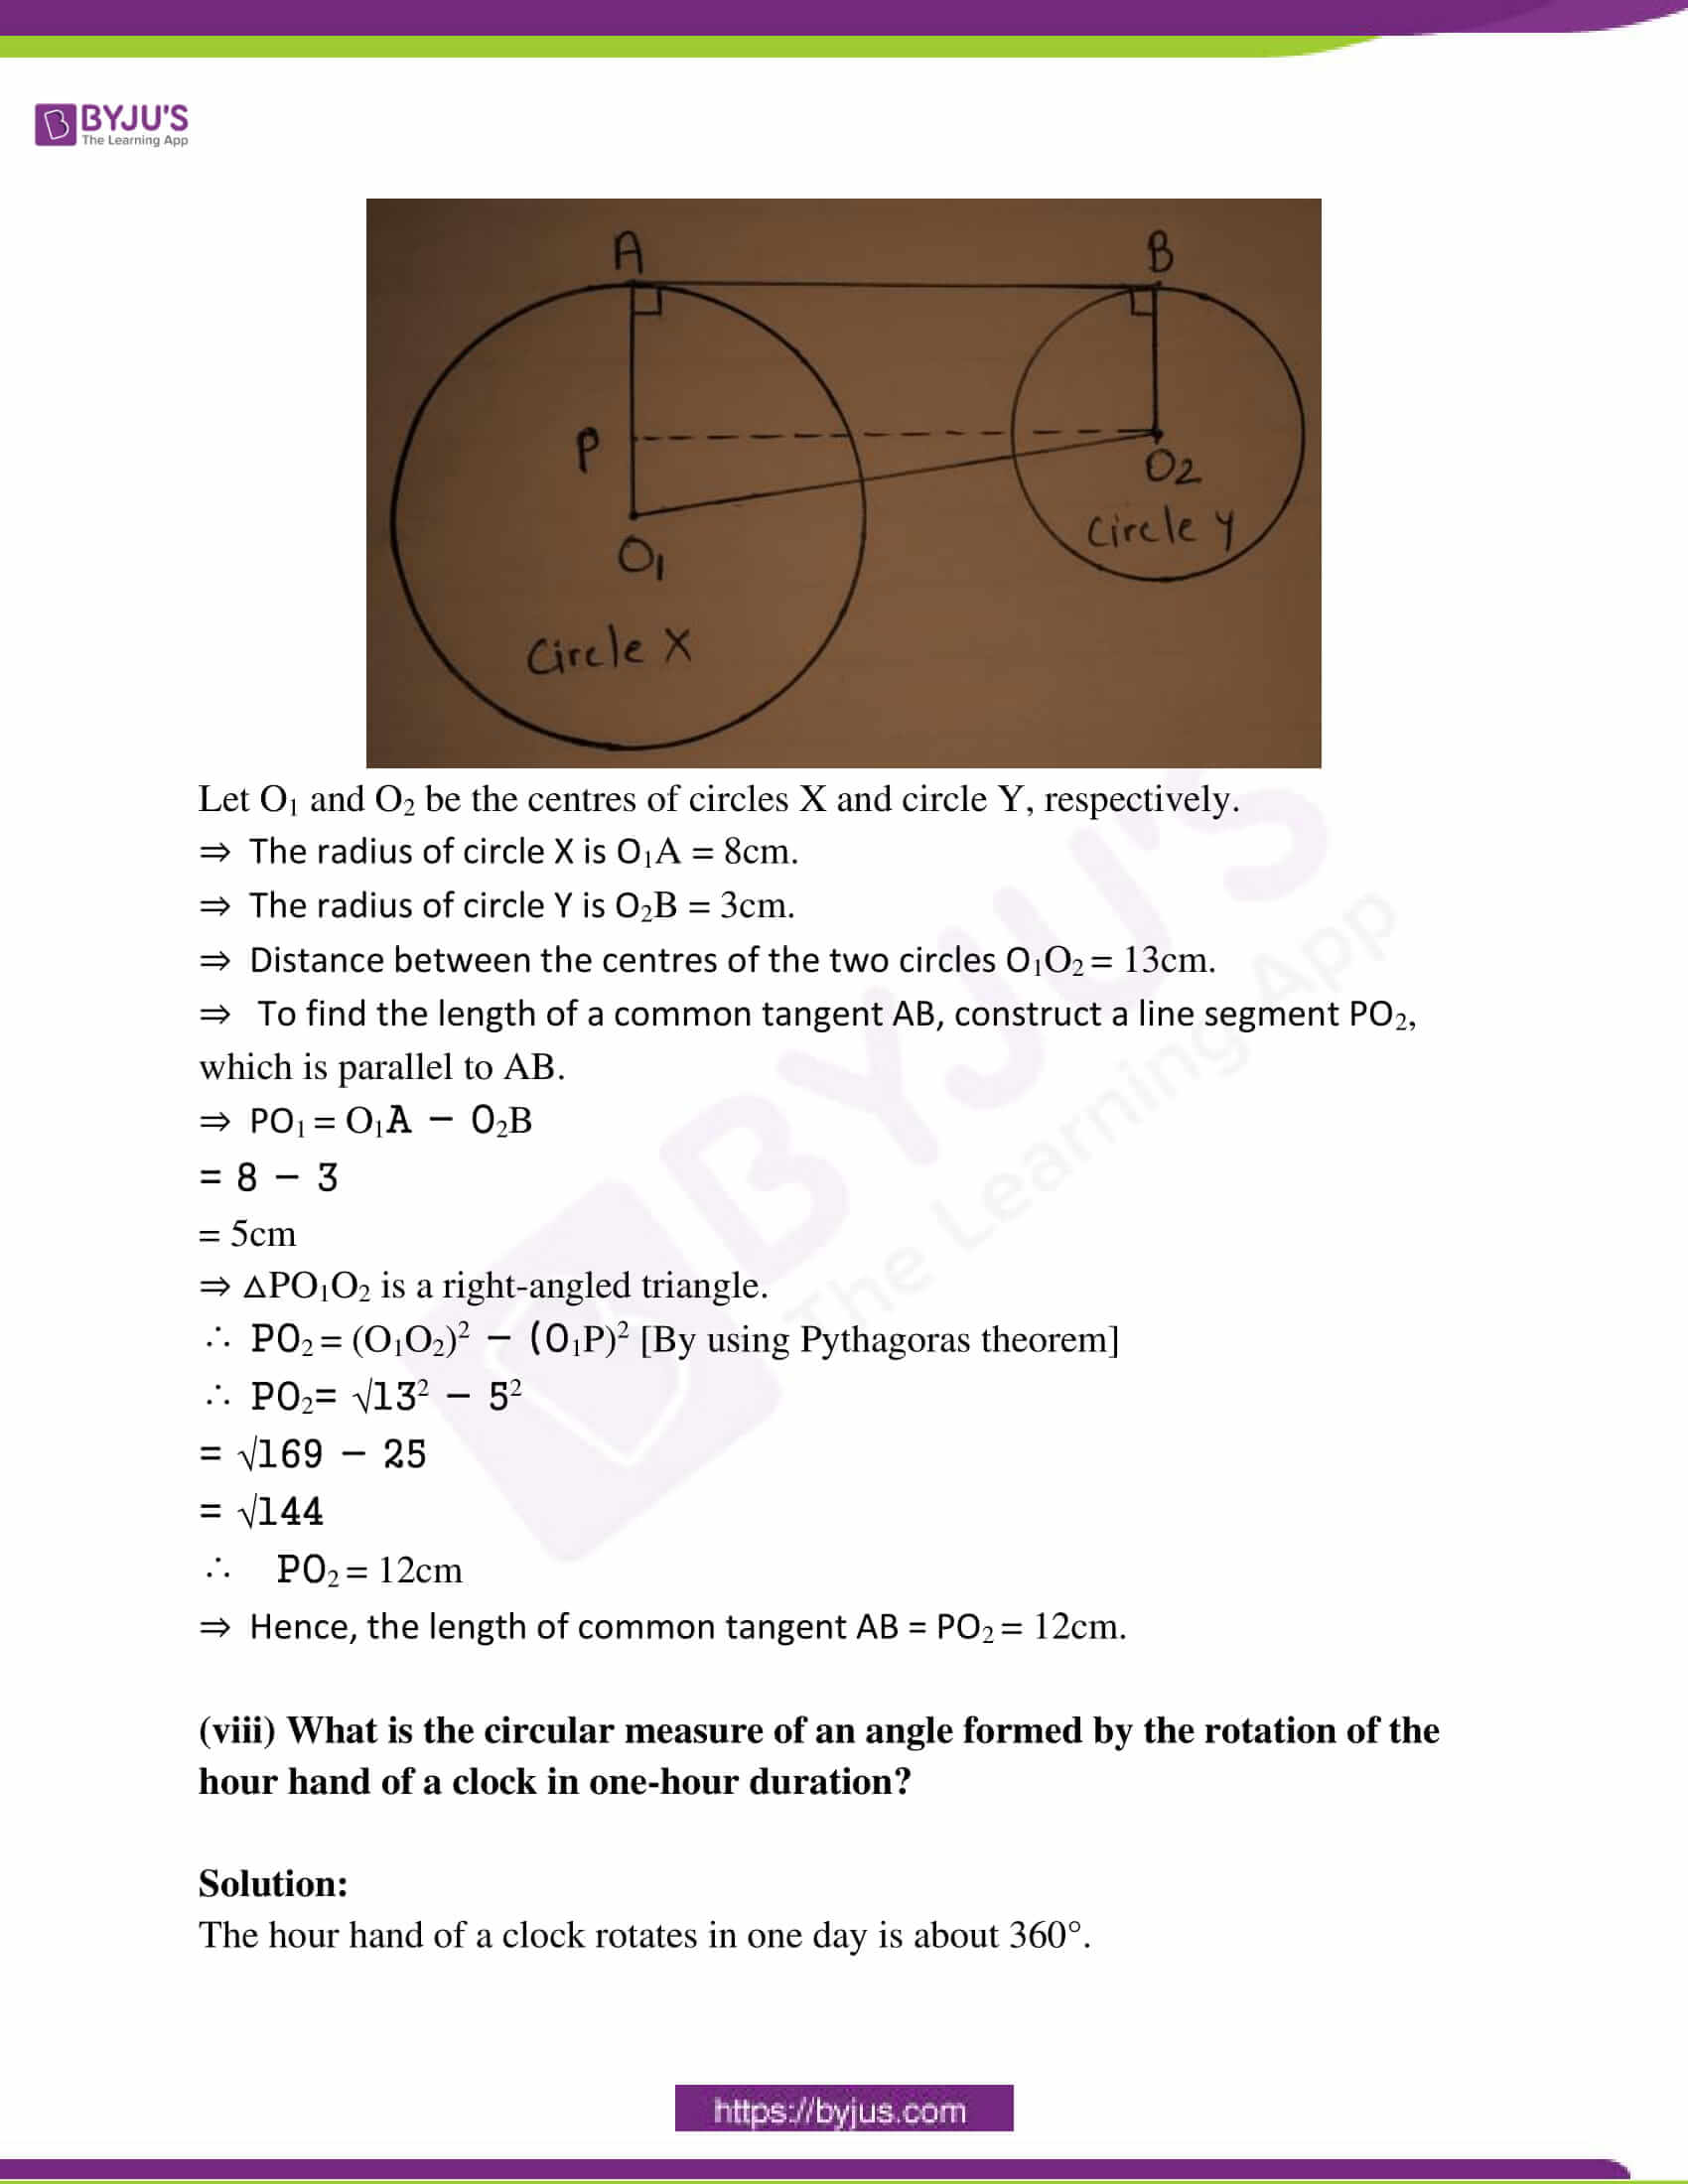 west bengal class 10 exam question paper solutions march 2020 09